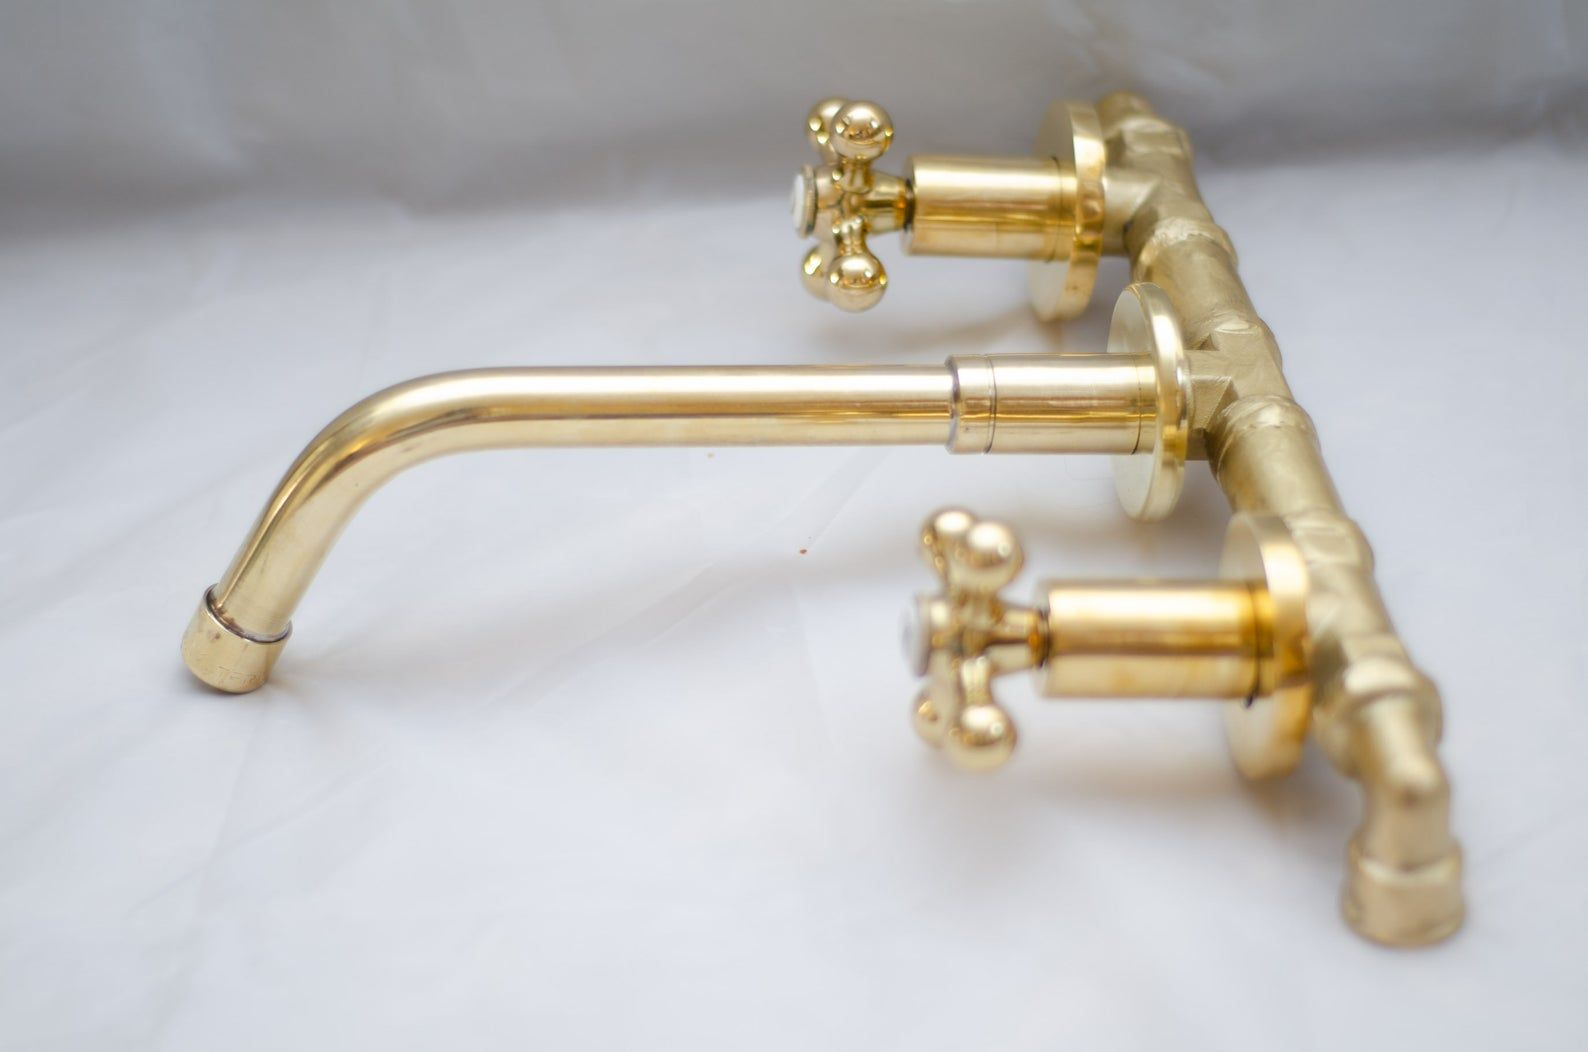 Wall Mounted Brass Faucet For Vessel Sink Bathroom Vanity Bathroom Sink In 2020 Brass Faucet Bathroom Sink Vanity Vessel Sink Bathroom Vanity